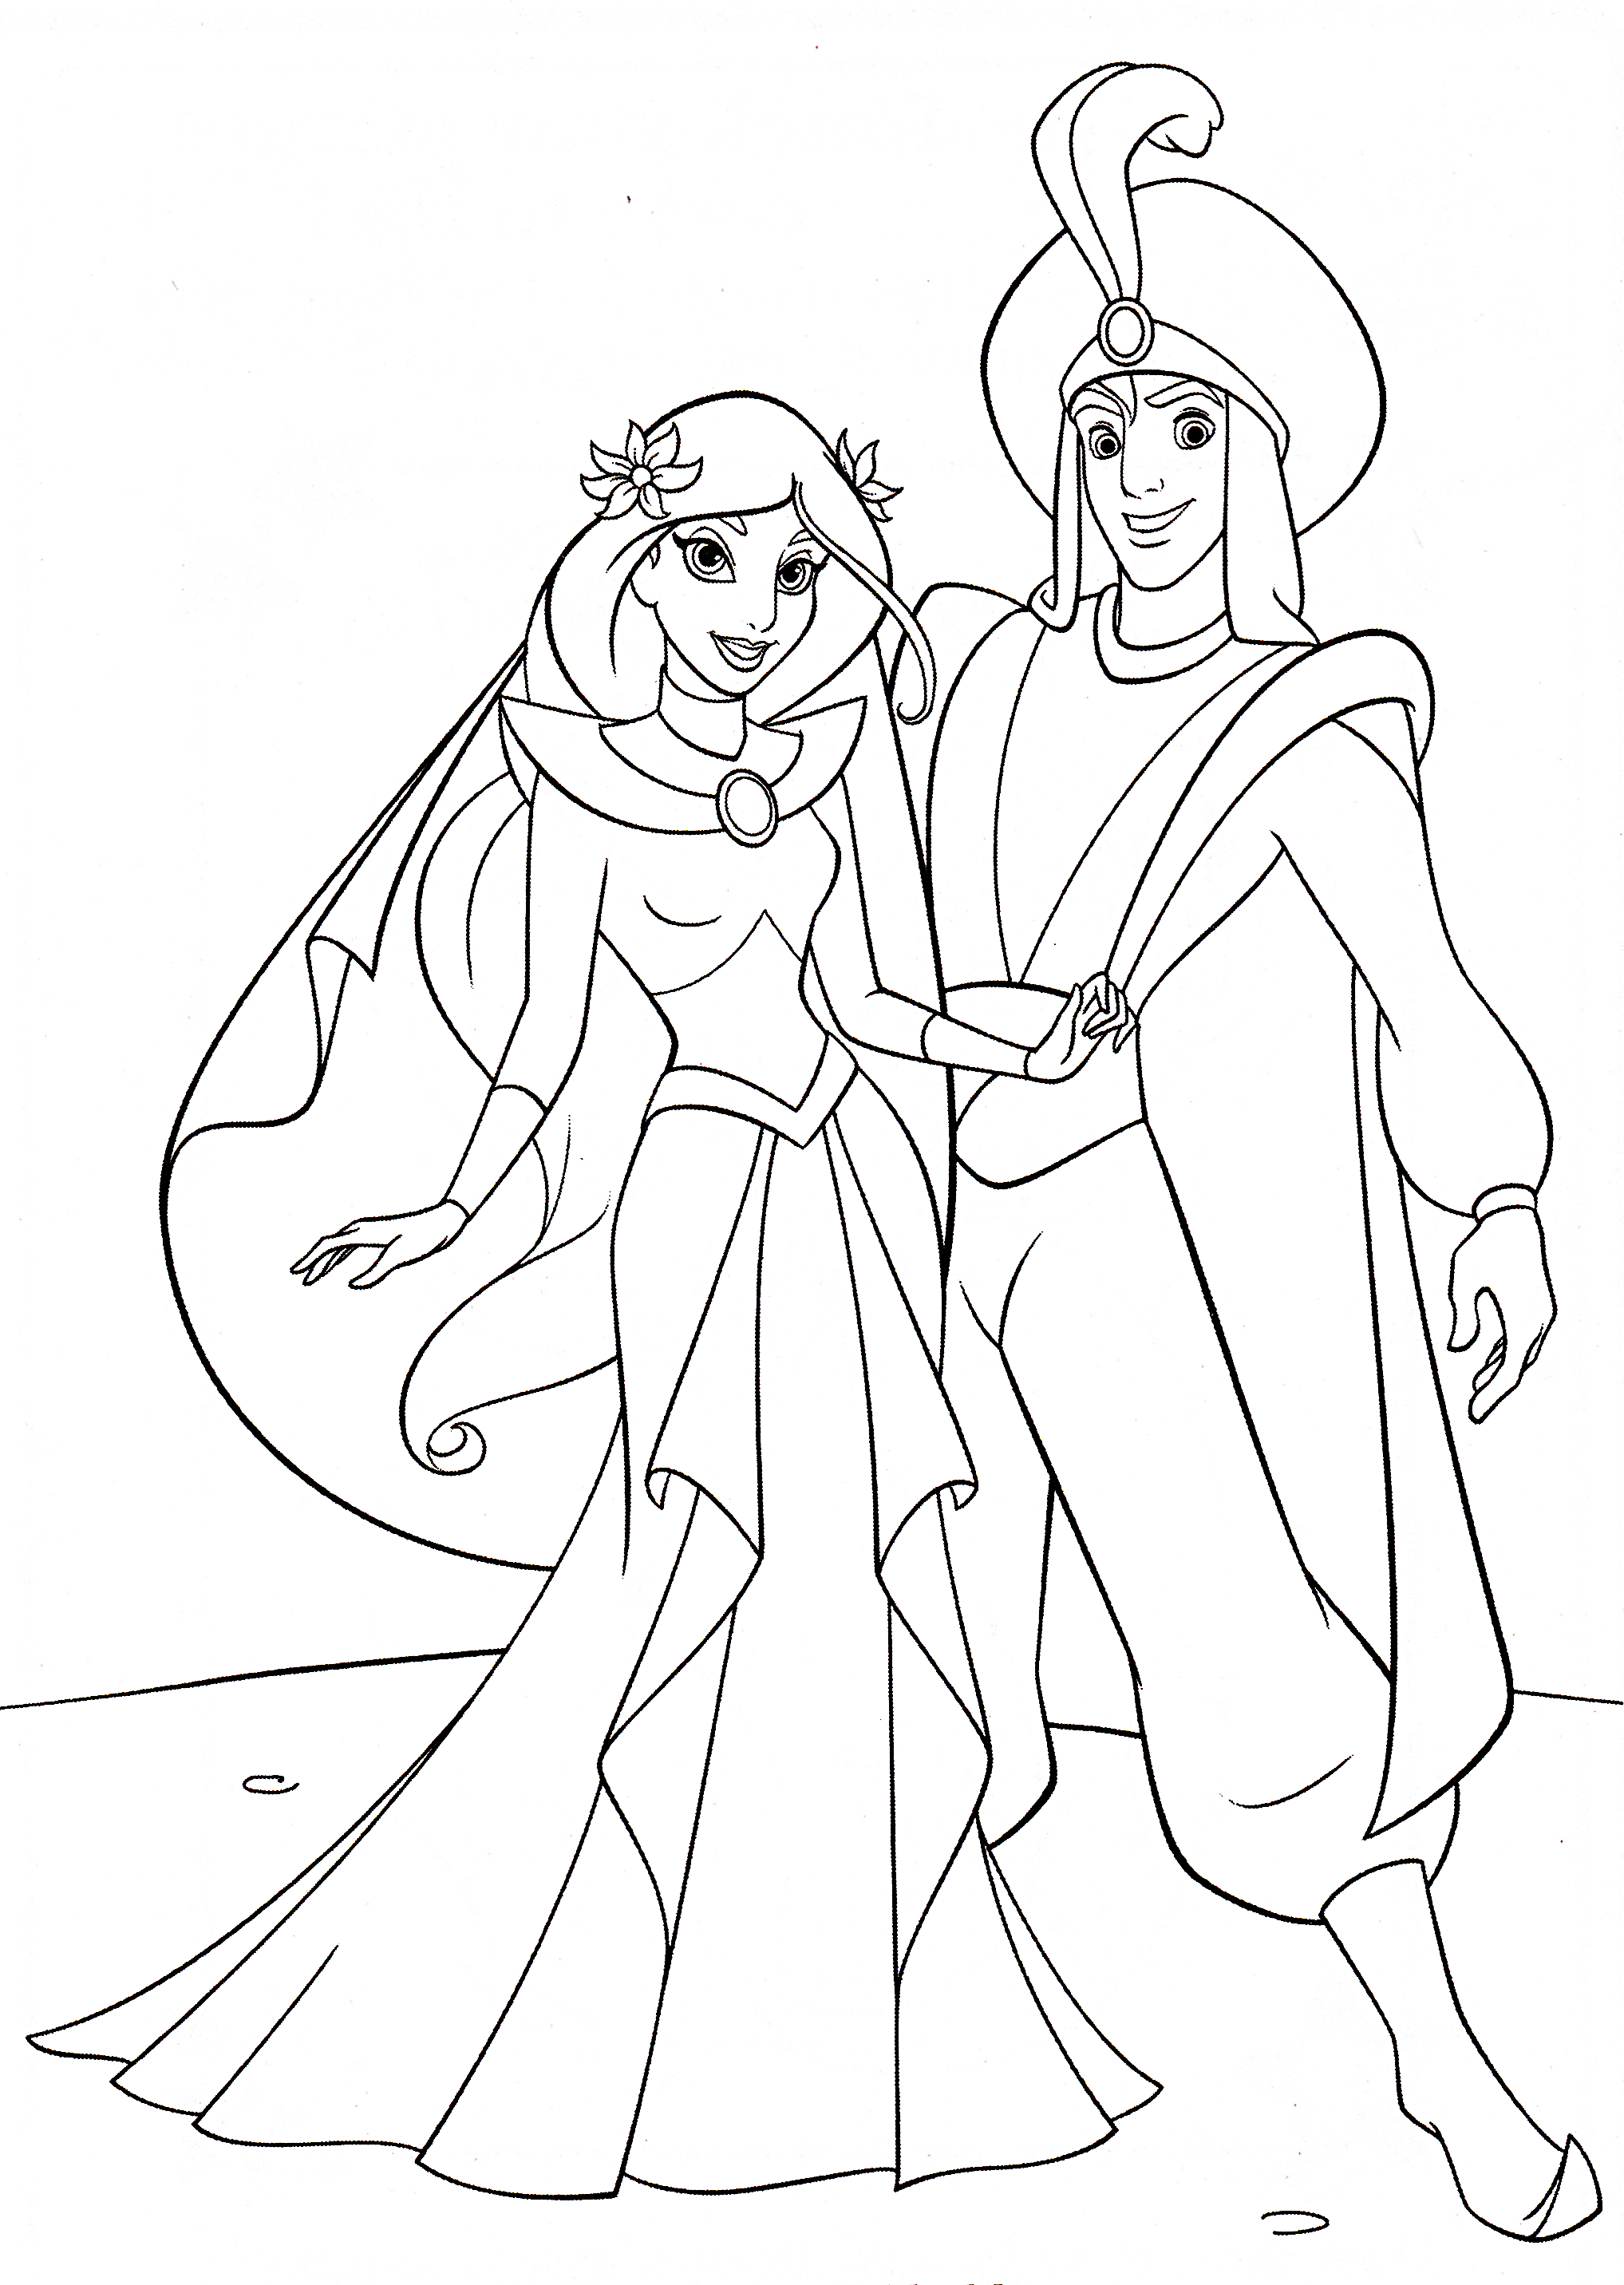 Coloring Pages Aladdin Yahoo Image Search Results Coloring